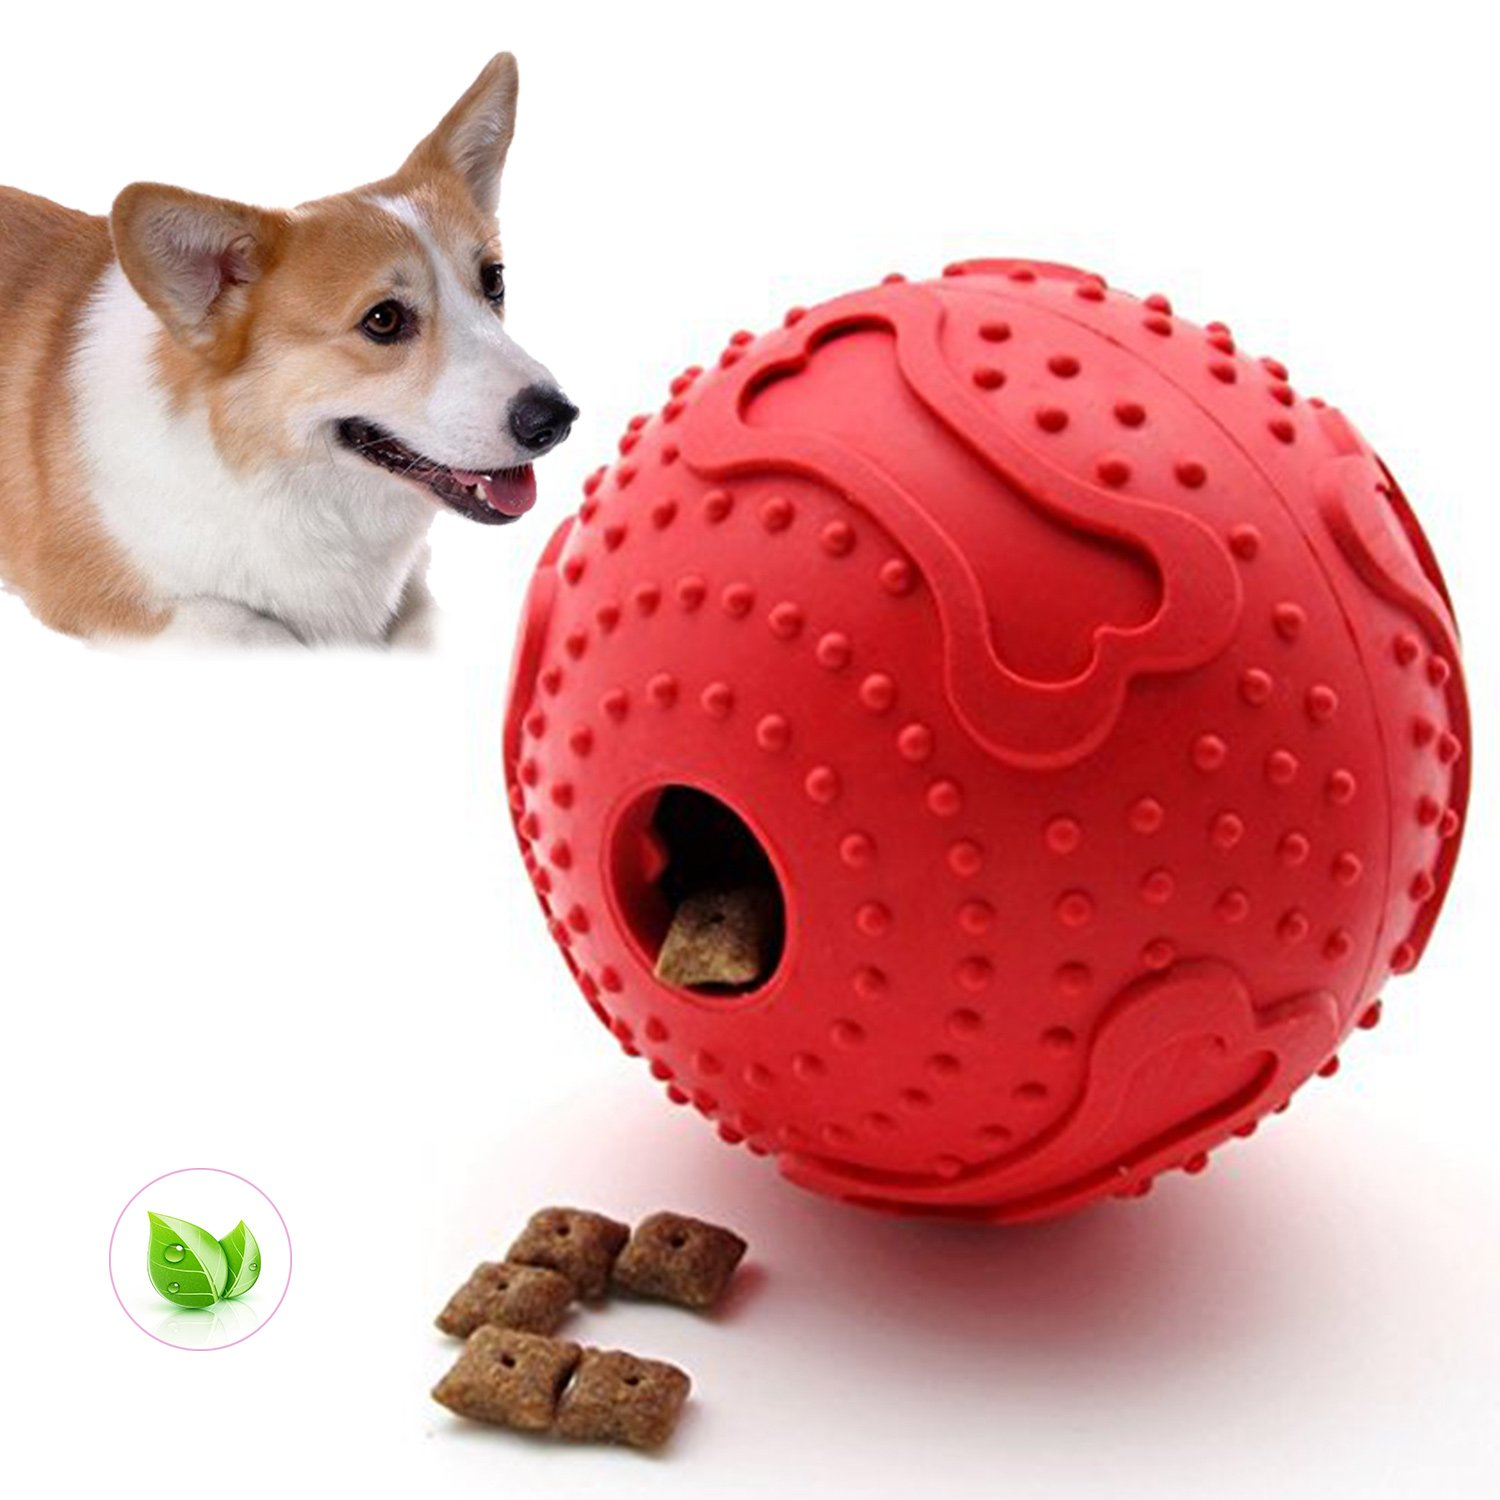 ThinkPet Rubber Treat Dispenser Interactive Dog Toy Red XL Size